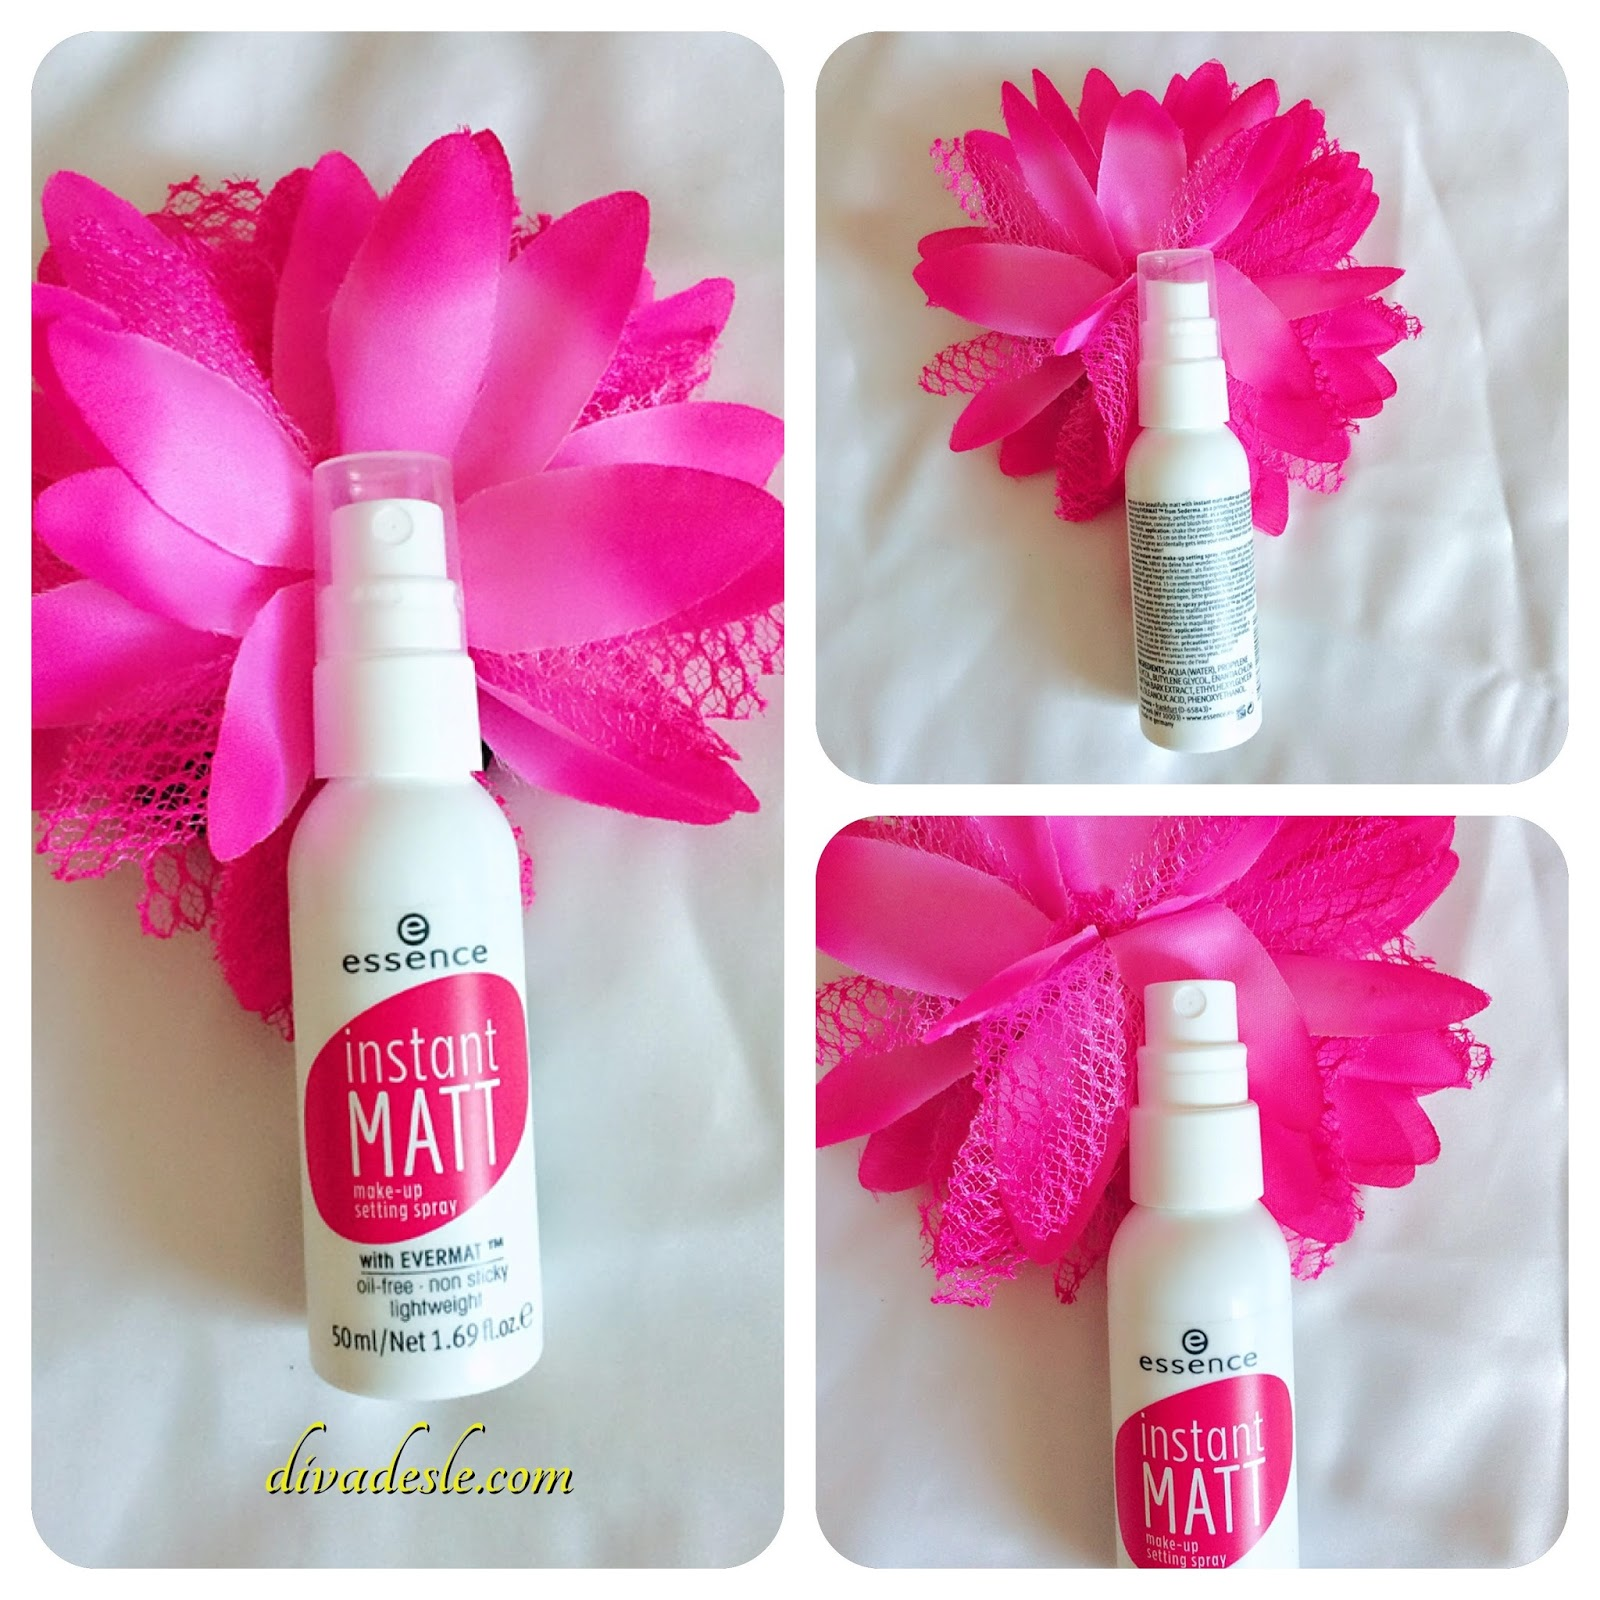 Essence Instant Matt Makeup Setting Spray Review Diva Desle